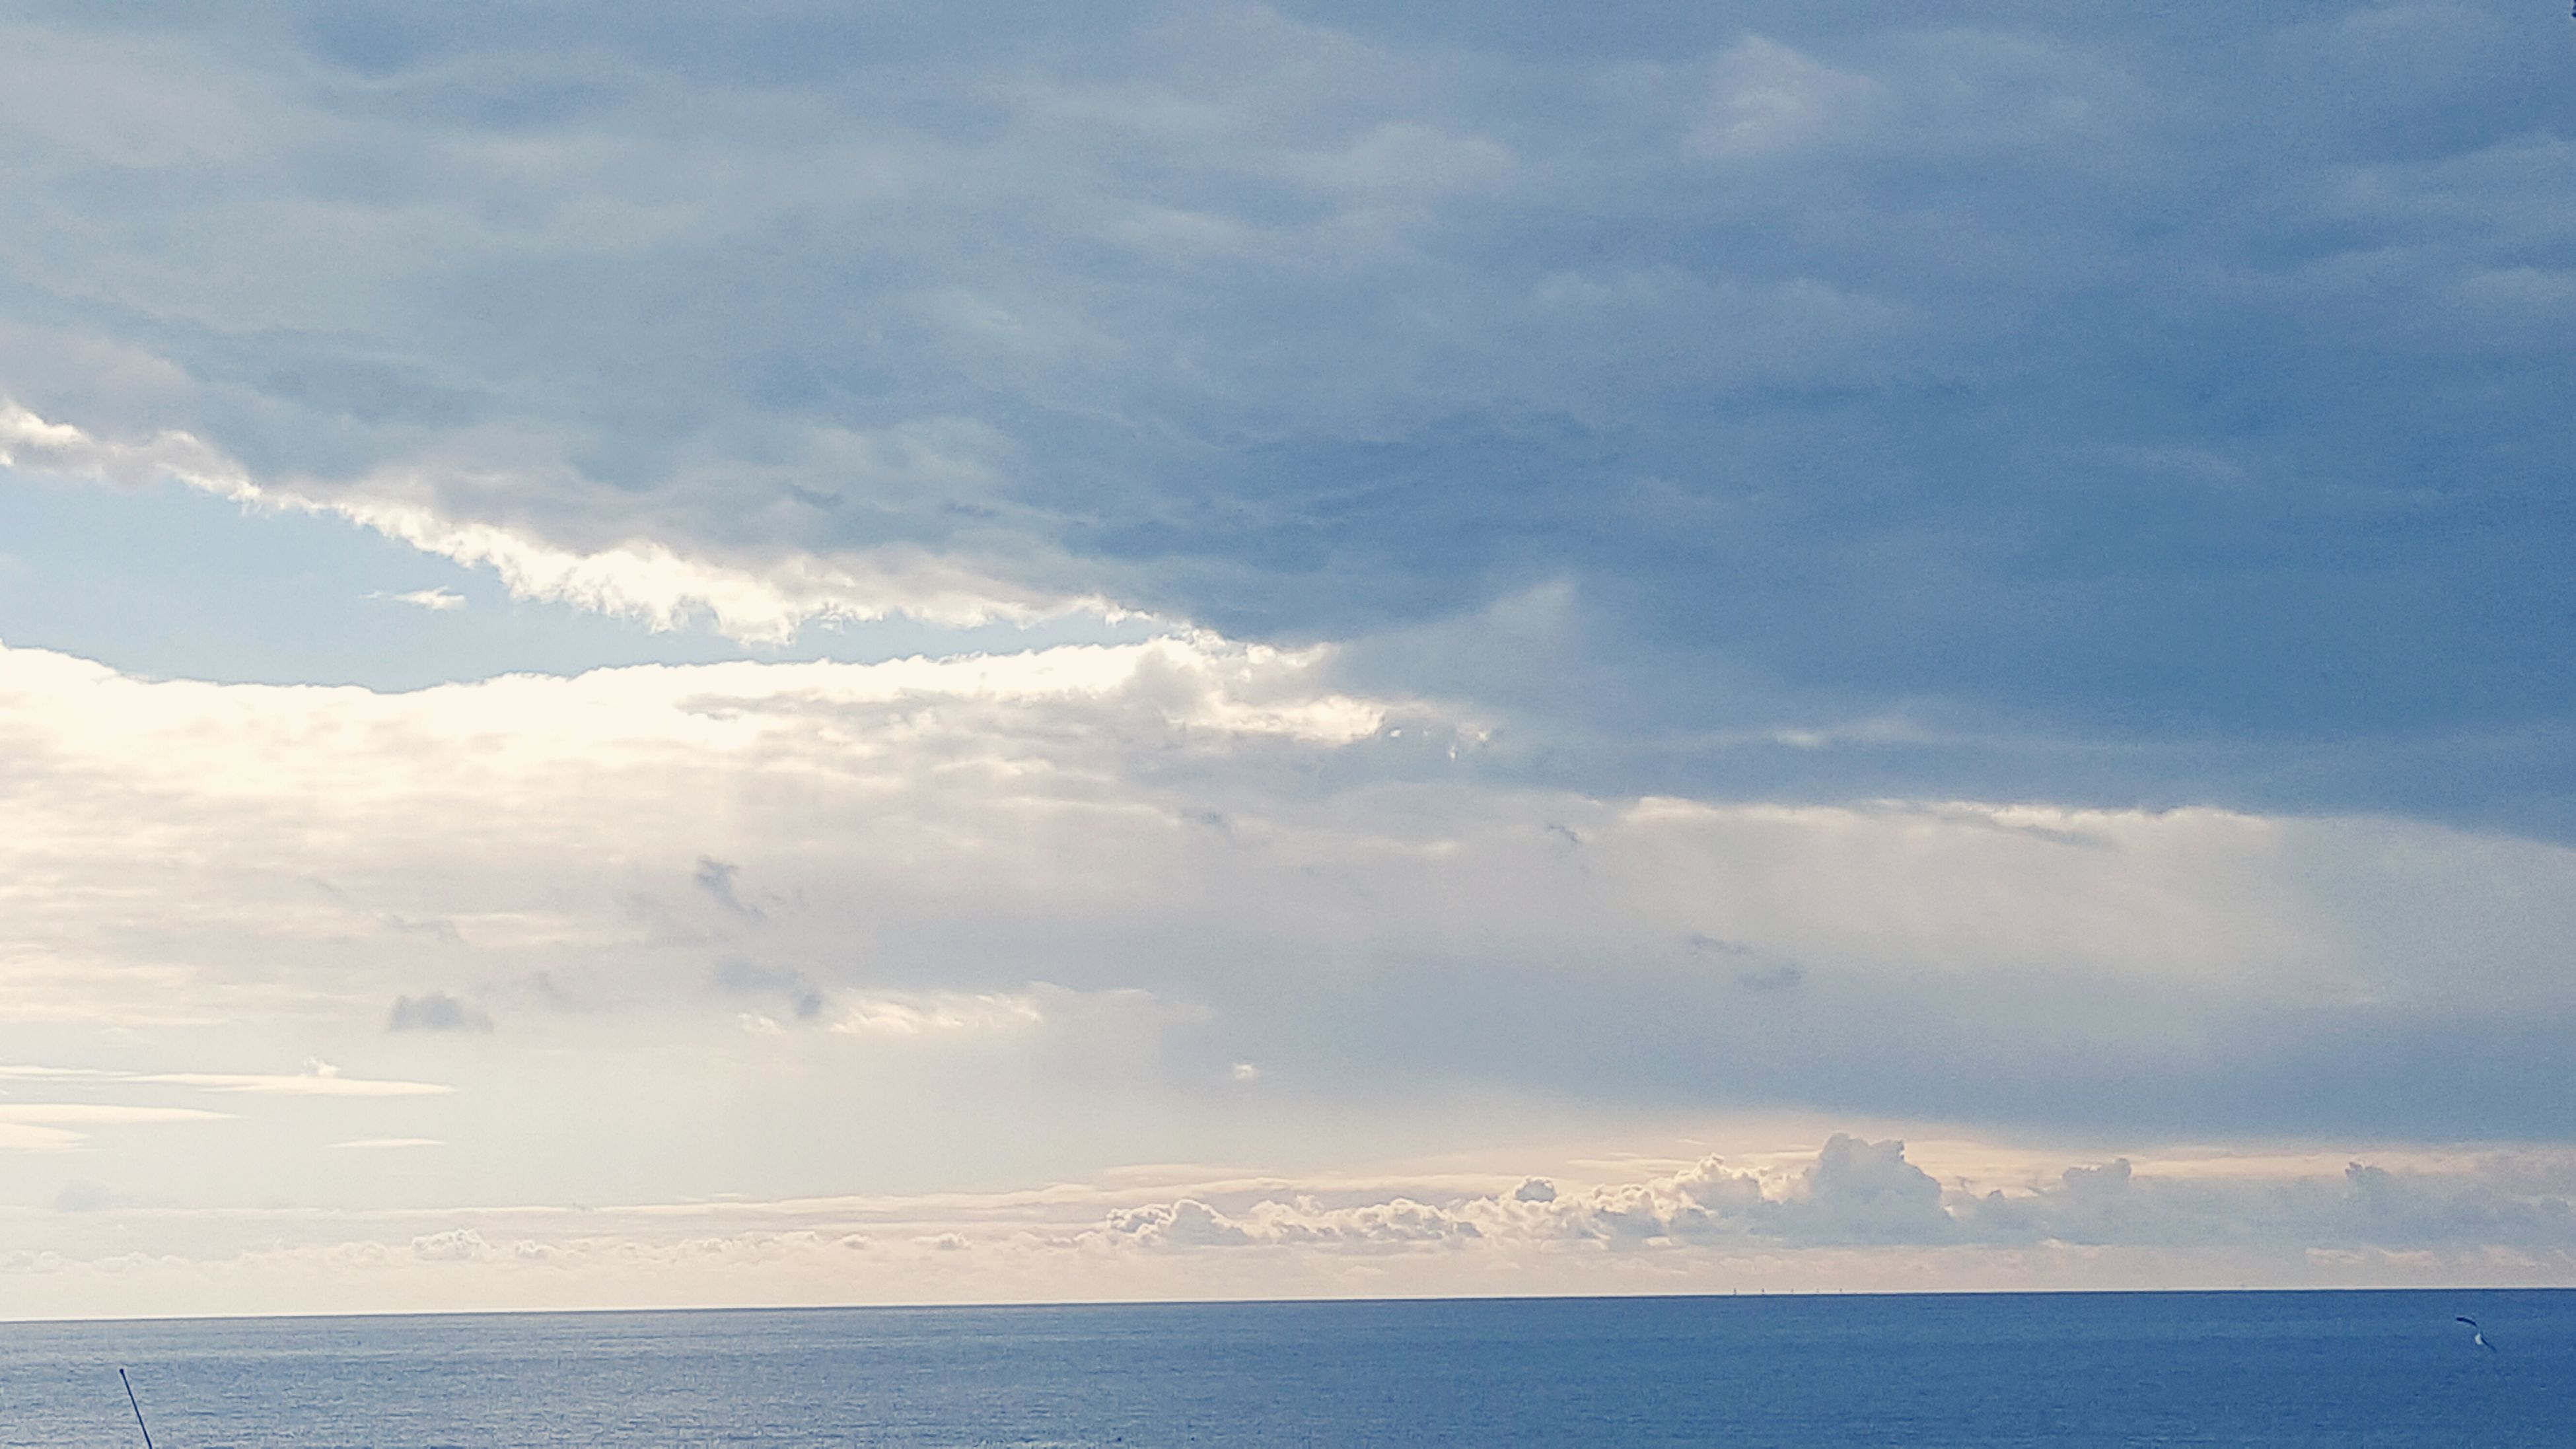 sea, sky, scenics, tranquil scene, water, beauty in nature, tranquility, waterfront, cloud - sky, horizon over water, nature, cloudy, cloud, idyllic, blue, weather, seascape, outdoors, day, no people